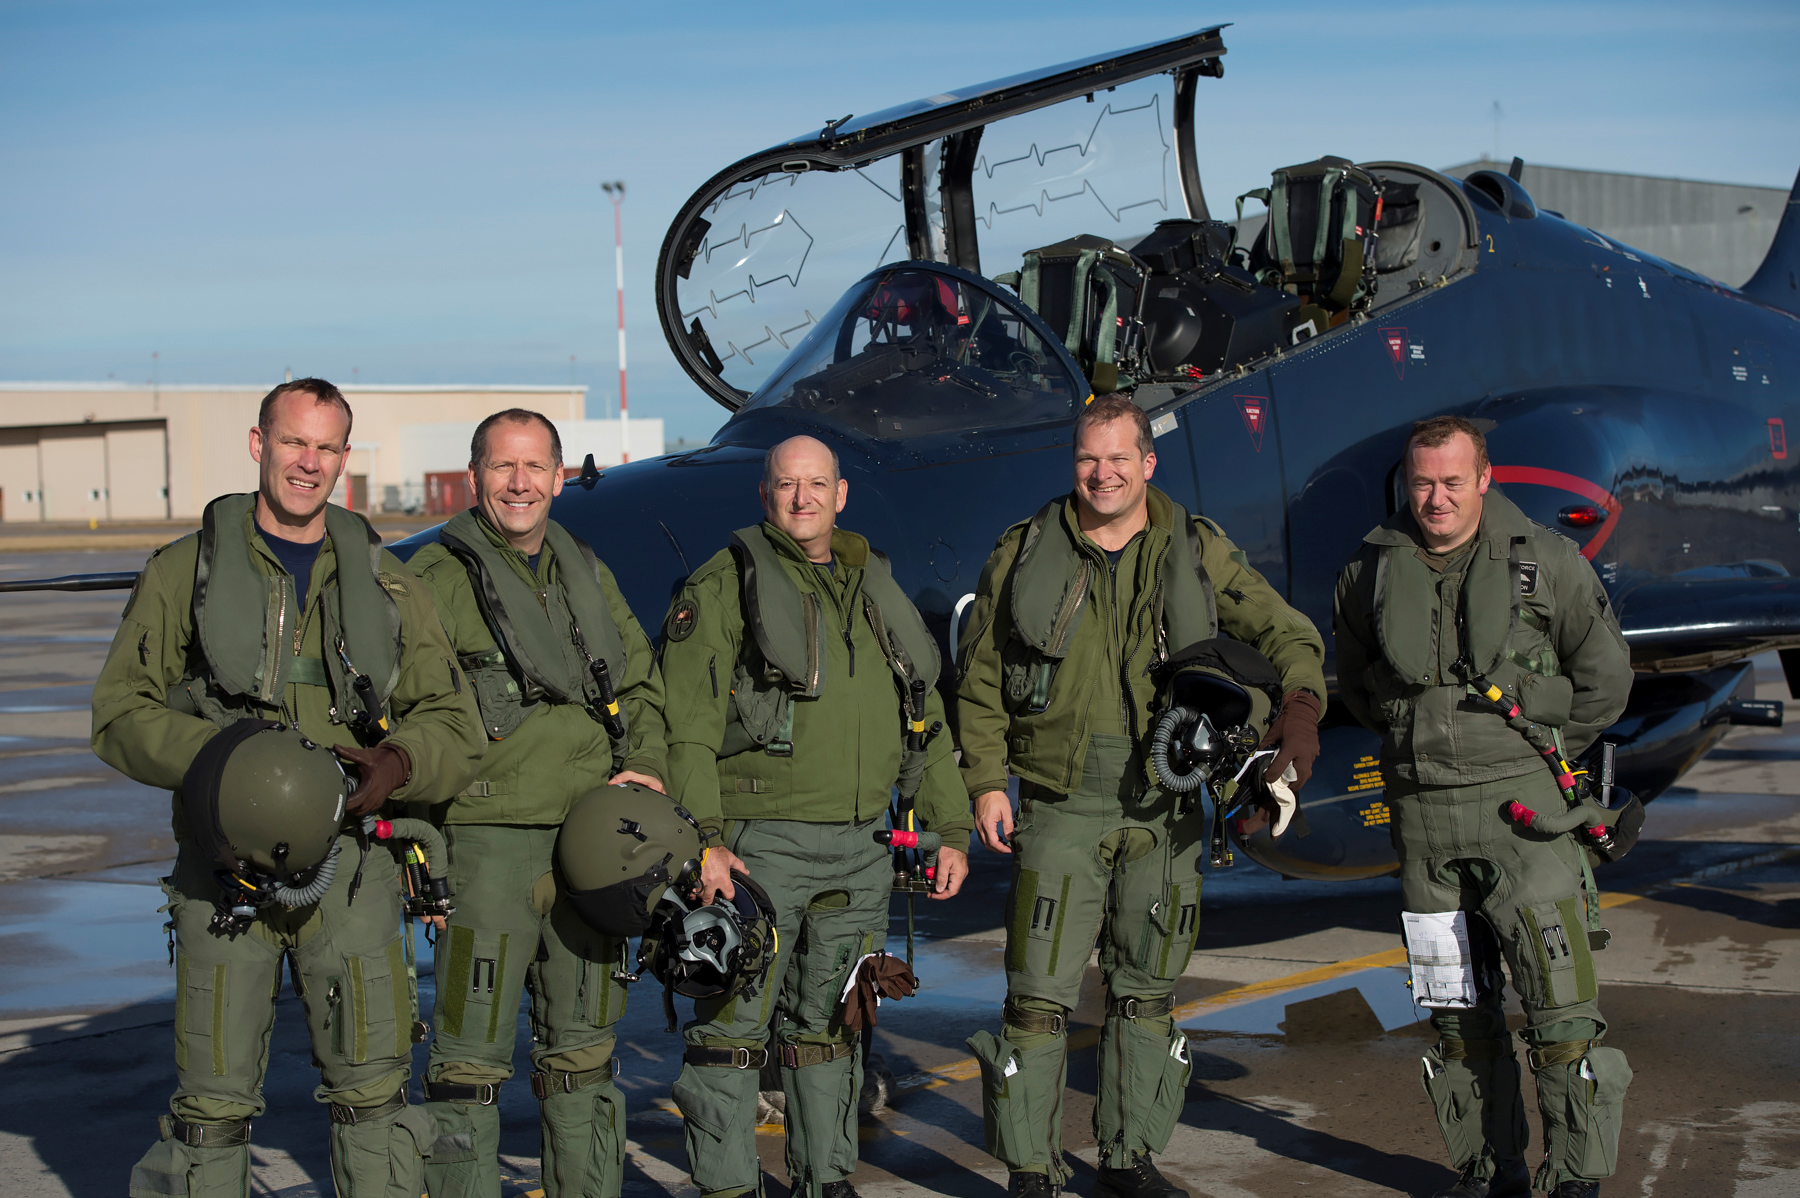 ba7f98ddc3 (From left to right) 419 Squadron's commanding officer, Lieutenant Colonel  Mike Grover; ...